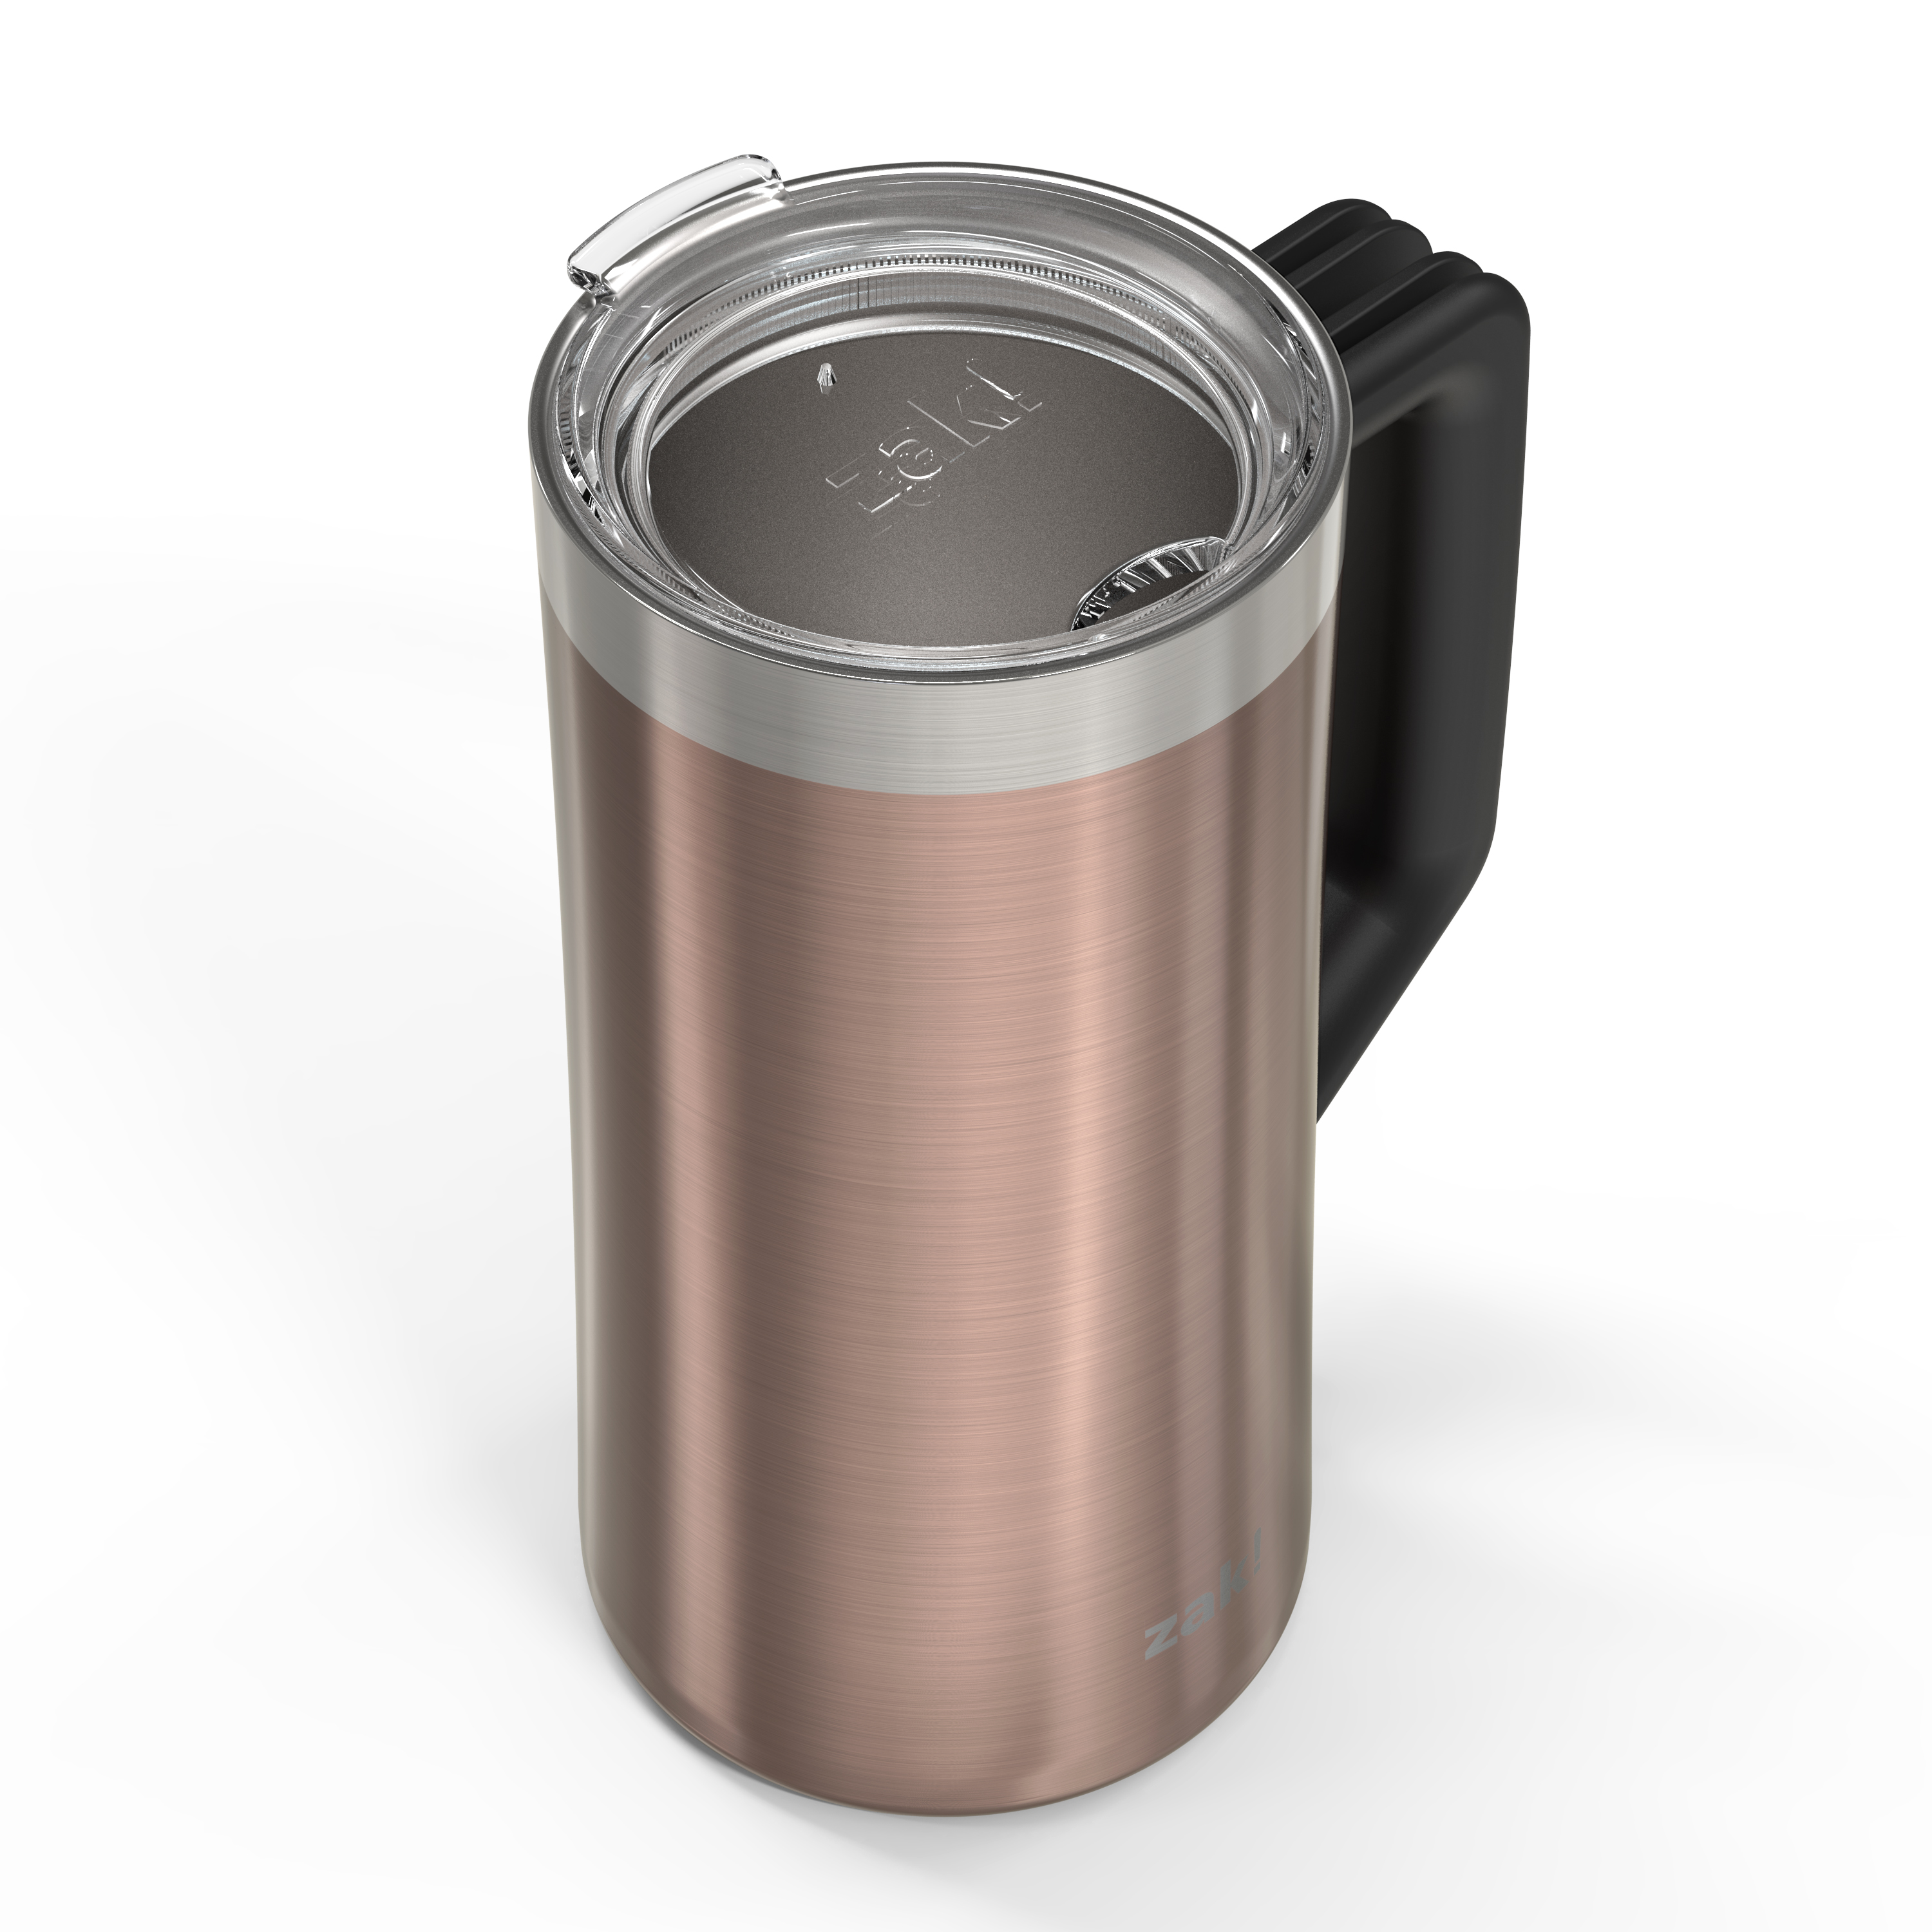 Creston 25 ounce Stainless Steel Vacuum Insulated Beer Stein, Rose Gold slideshow image 3